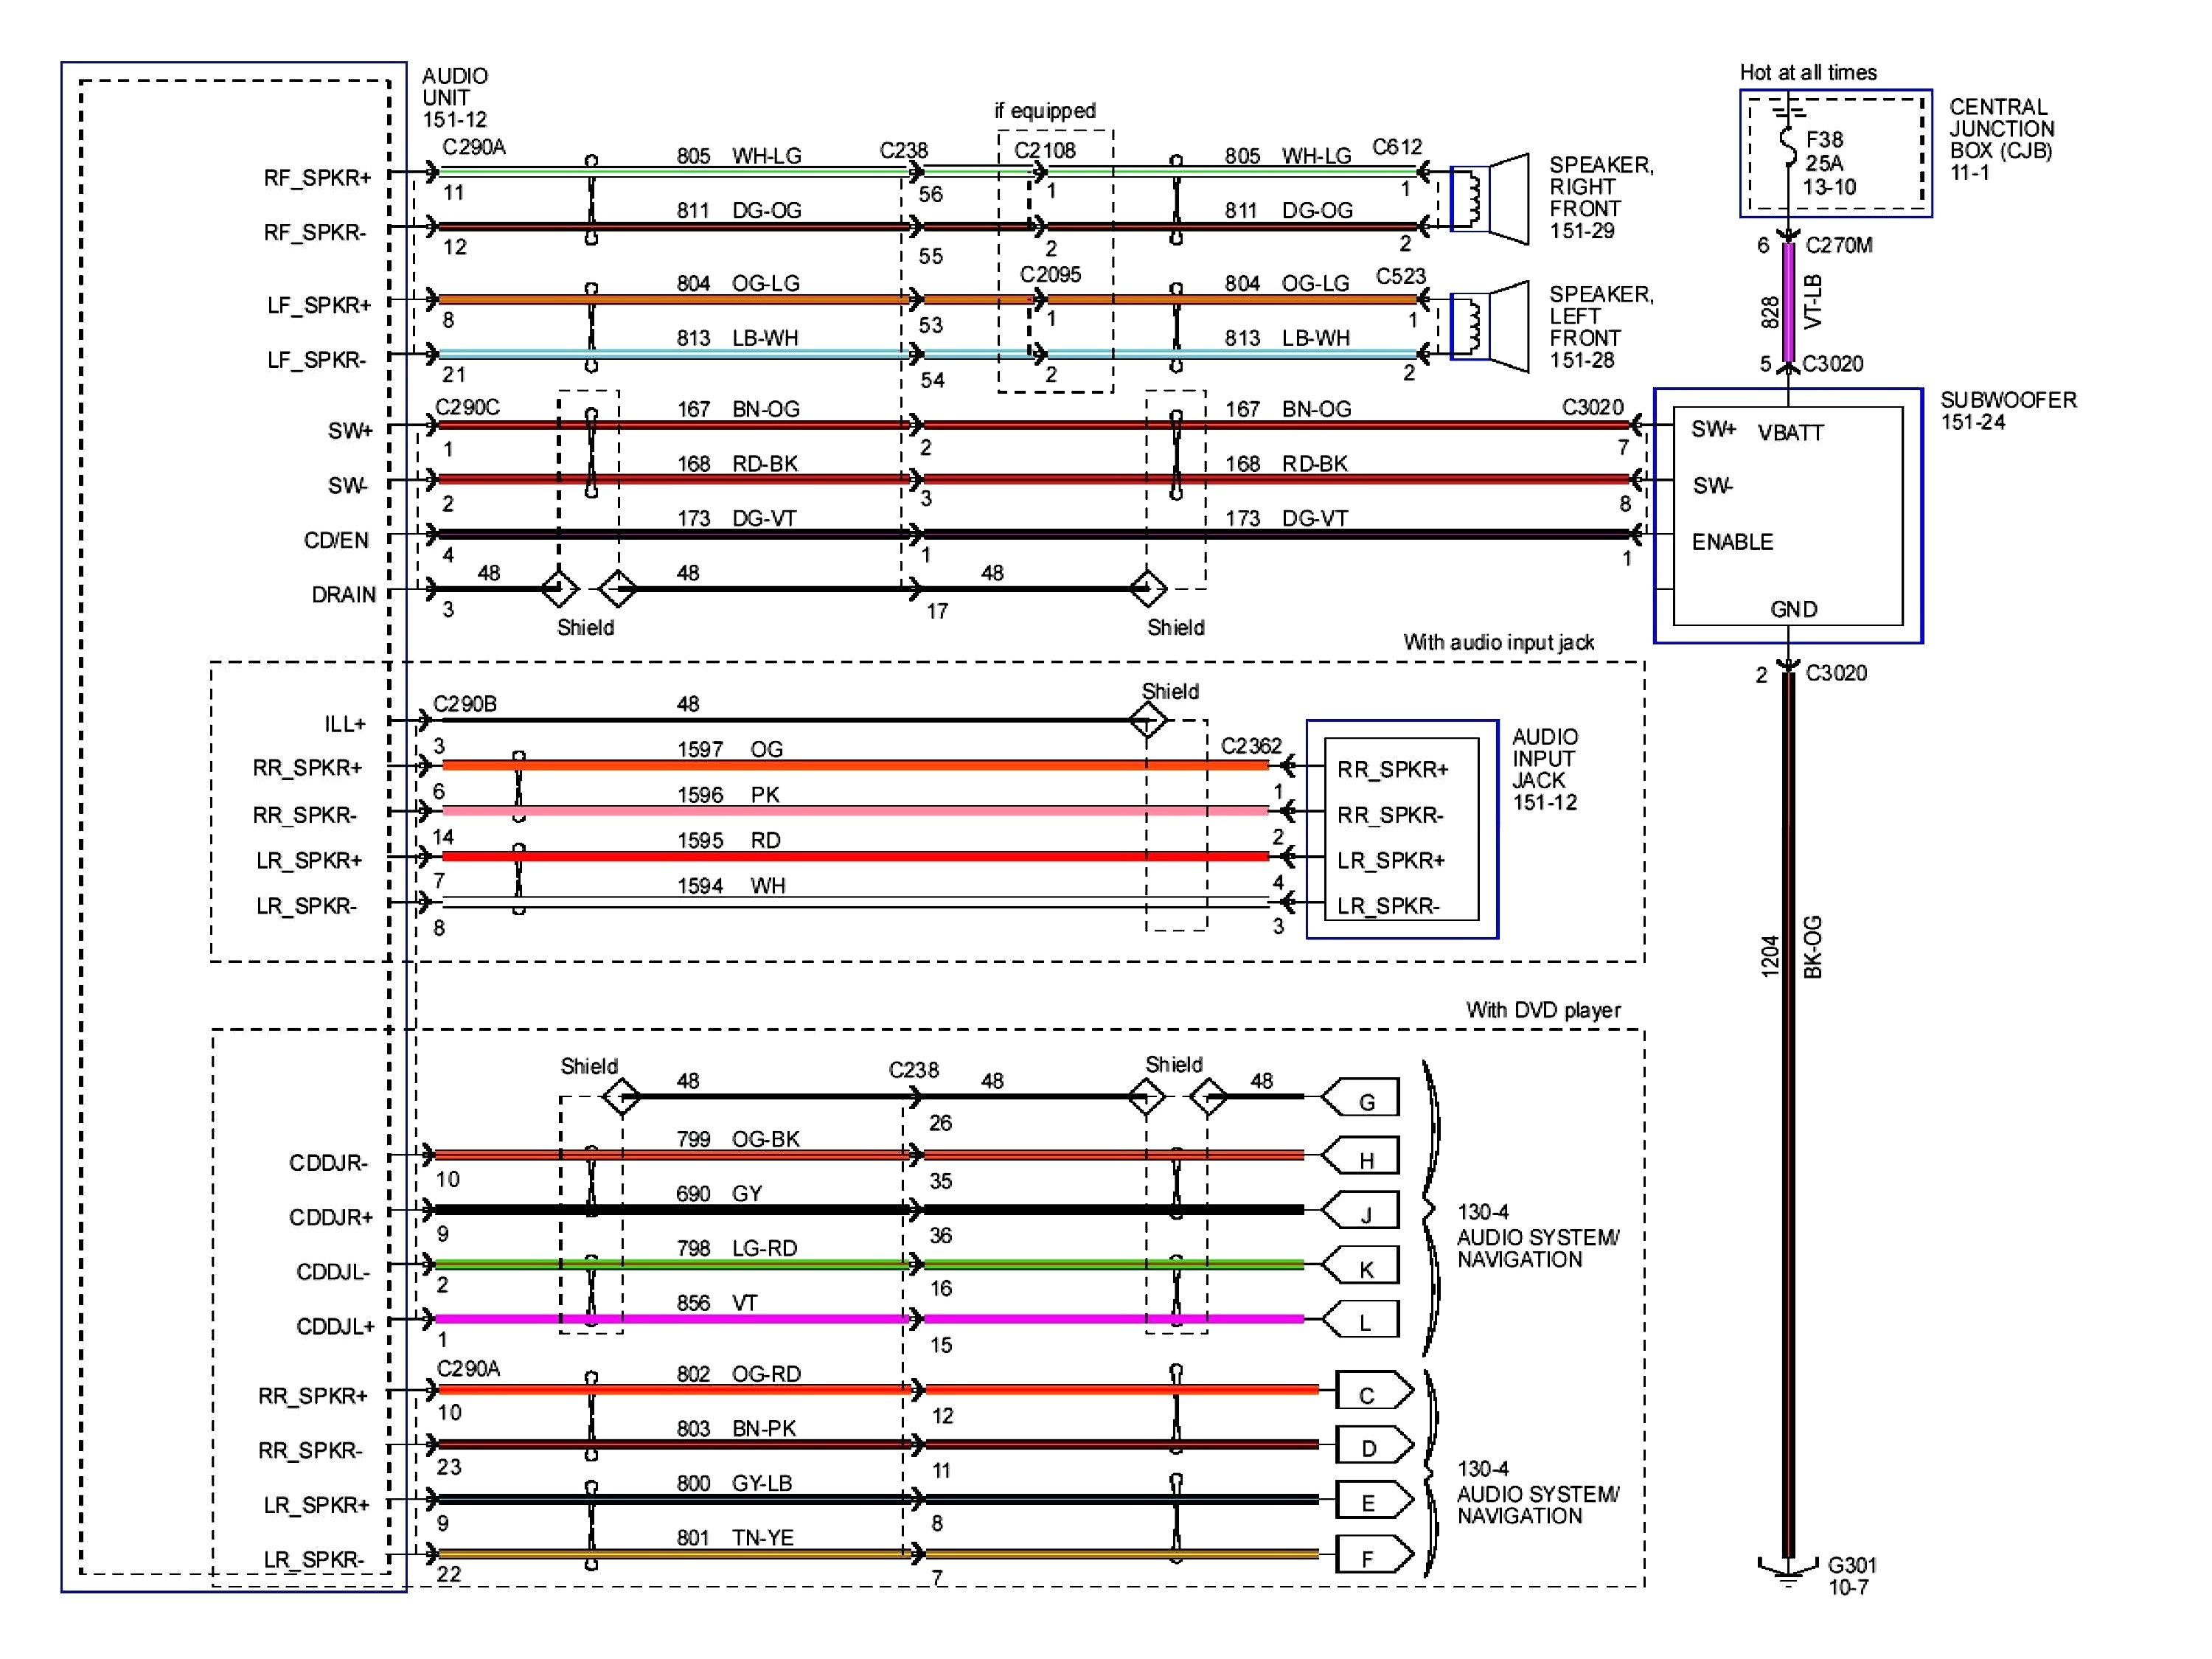 1997 Ford Explorer Eddie Bauer Radio Wiring Diagram from static-cdn.imageservice.cloud